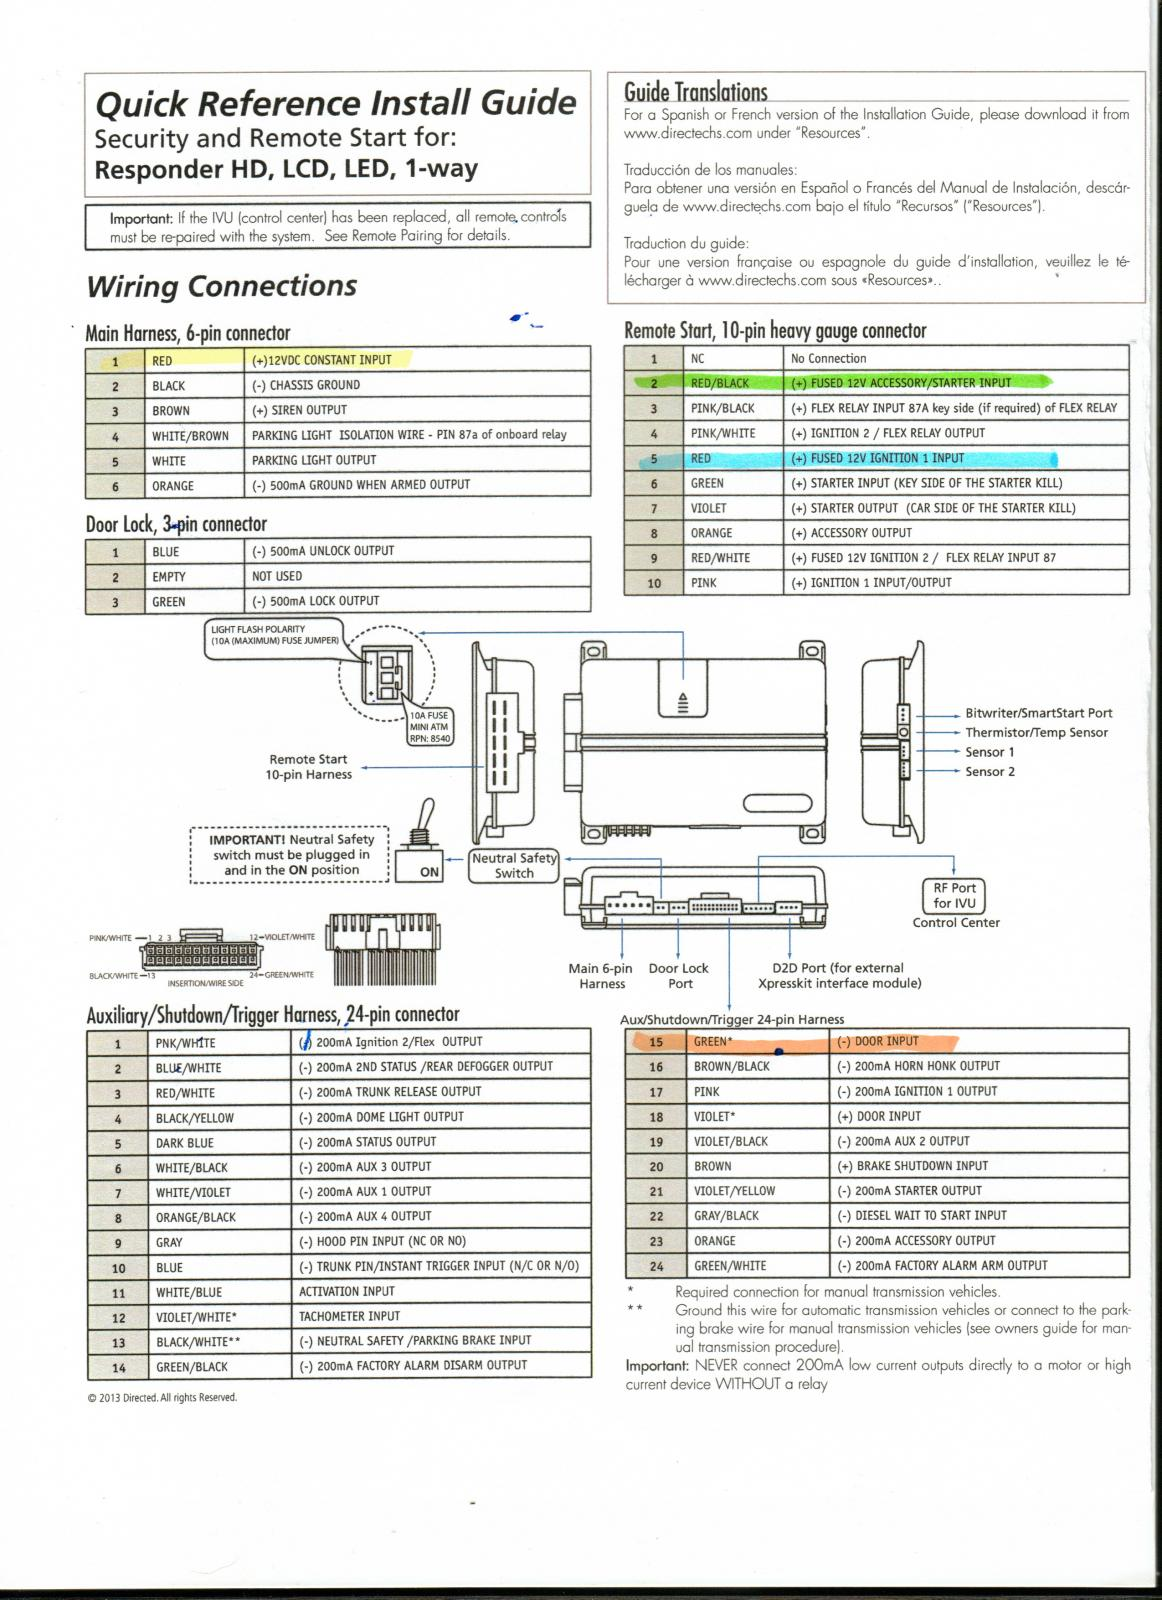 Perfect 5901 Viper Alarm Wiring Diagram Image Collection